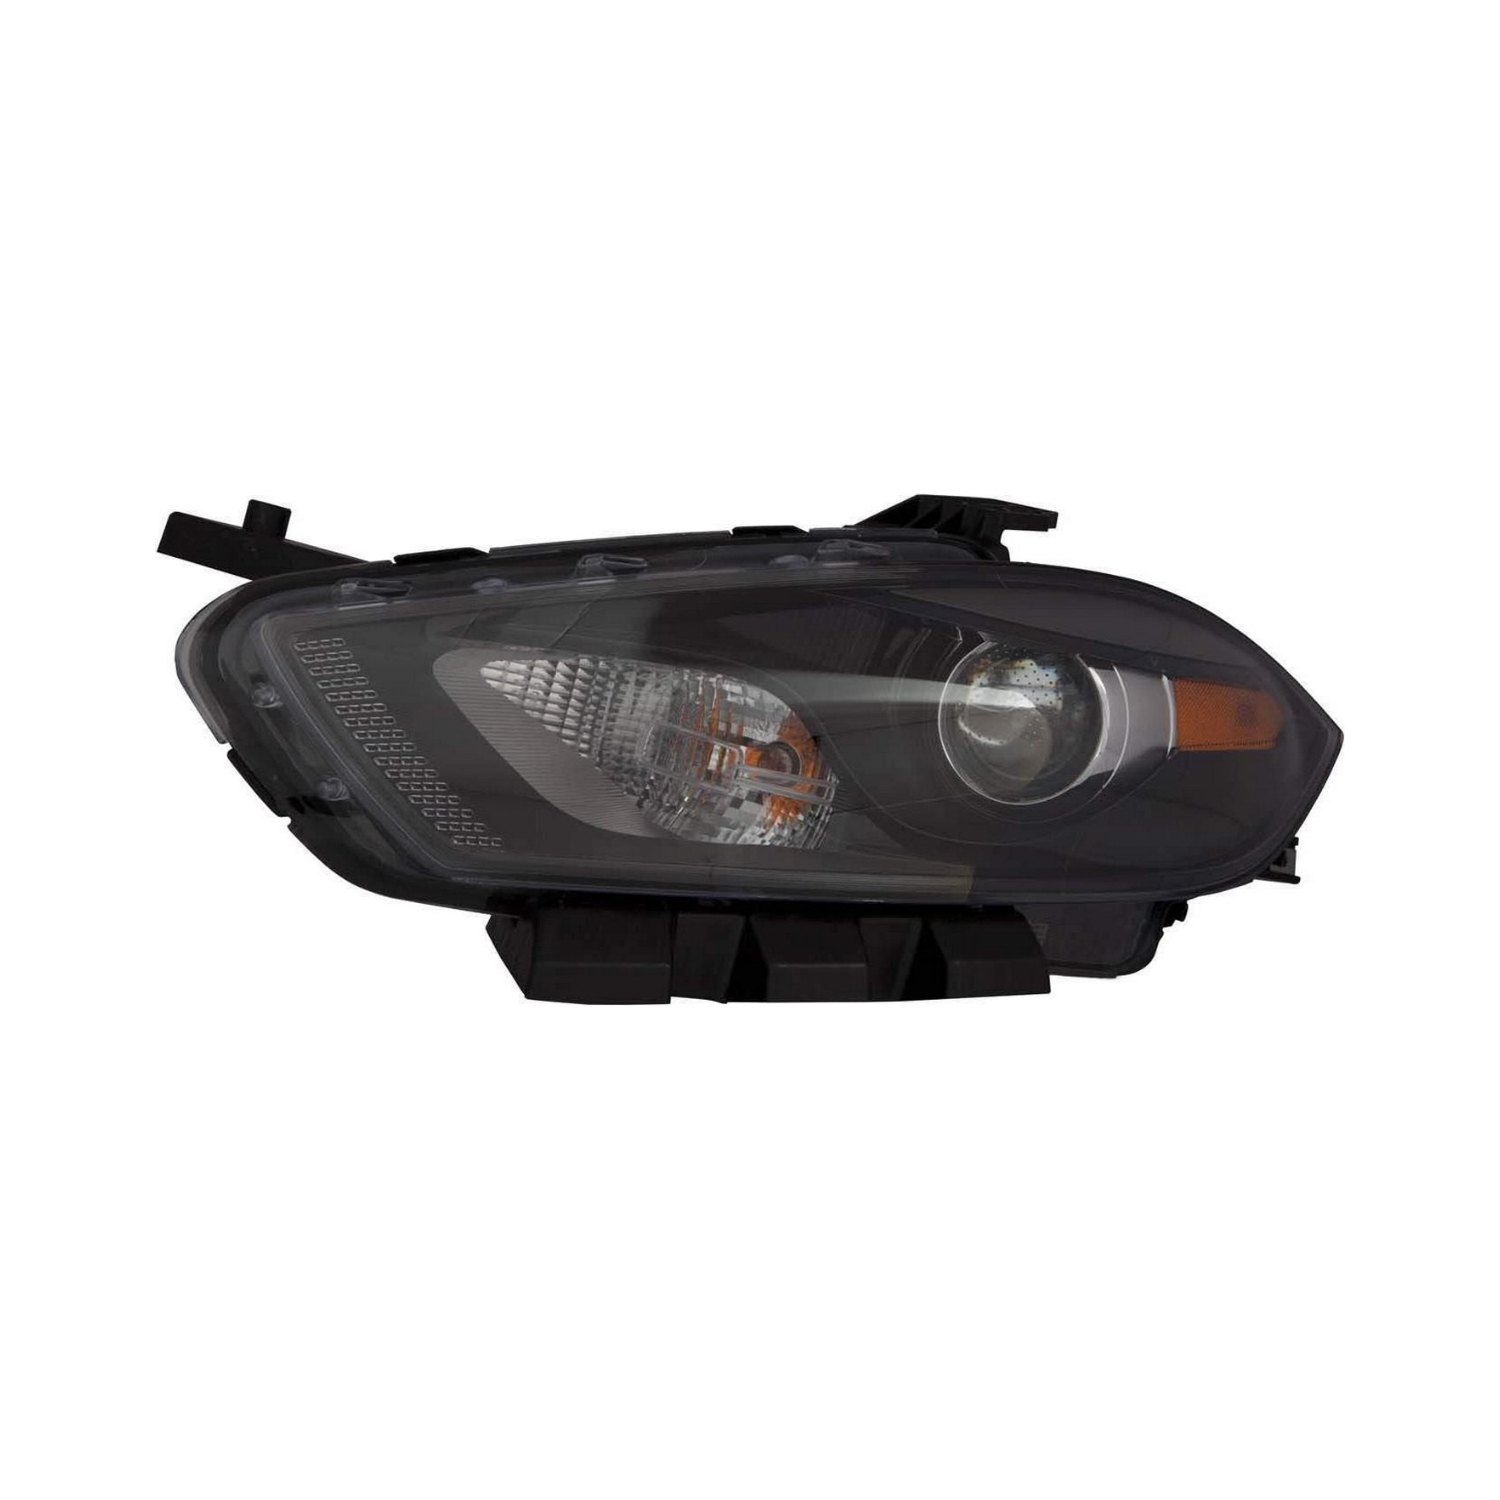 Dodge Replacement Headlights: For Dodge Dart 2013-2016 Replace CH2518145N Driver Side